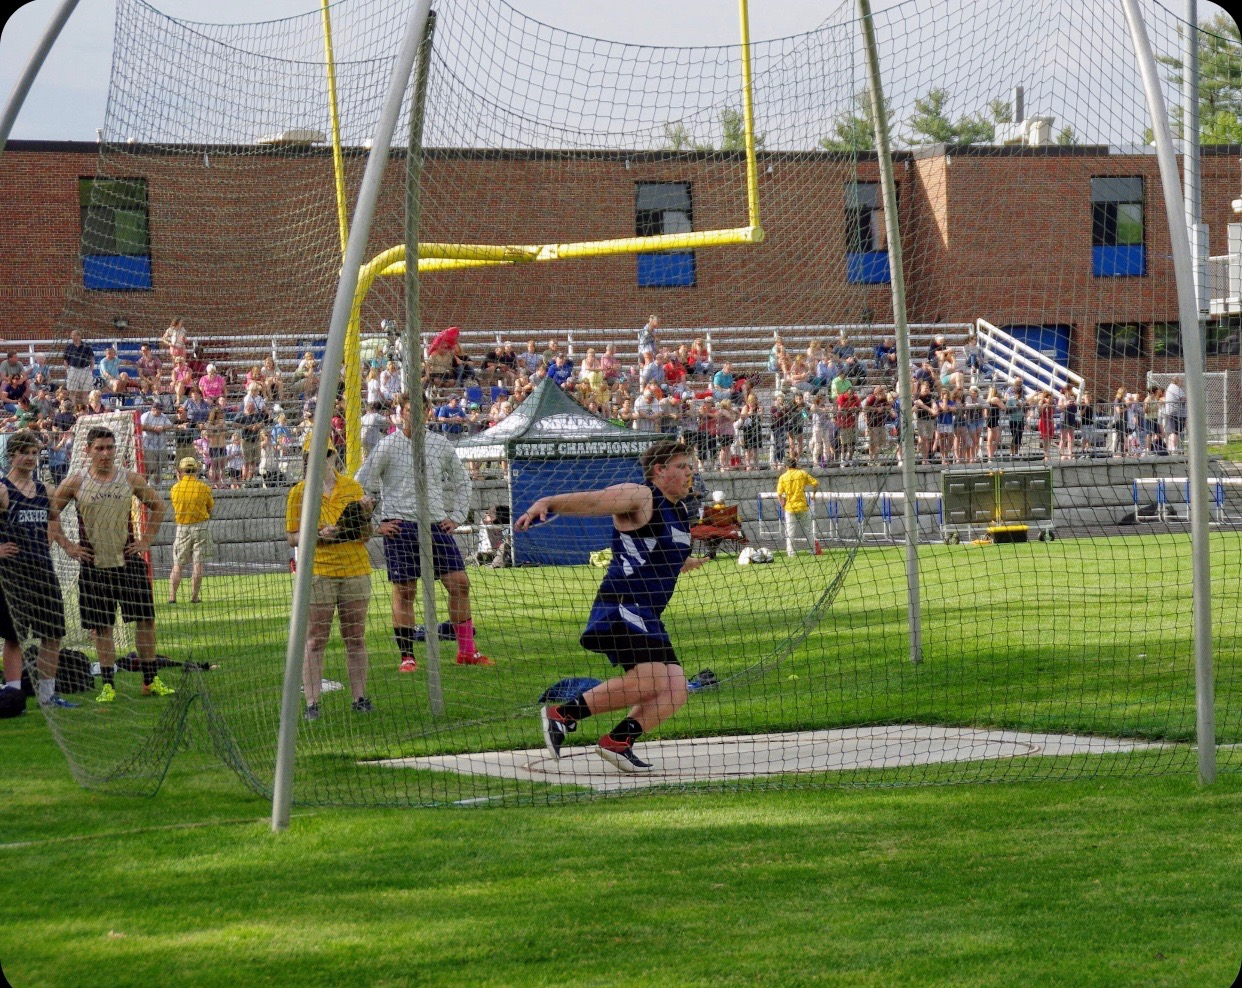 Hagearty winds up and prepares to hurl the discus down field.